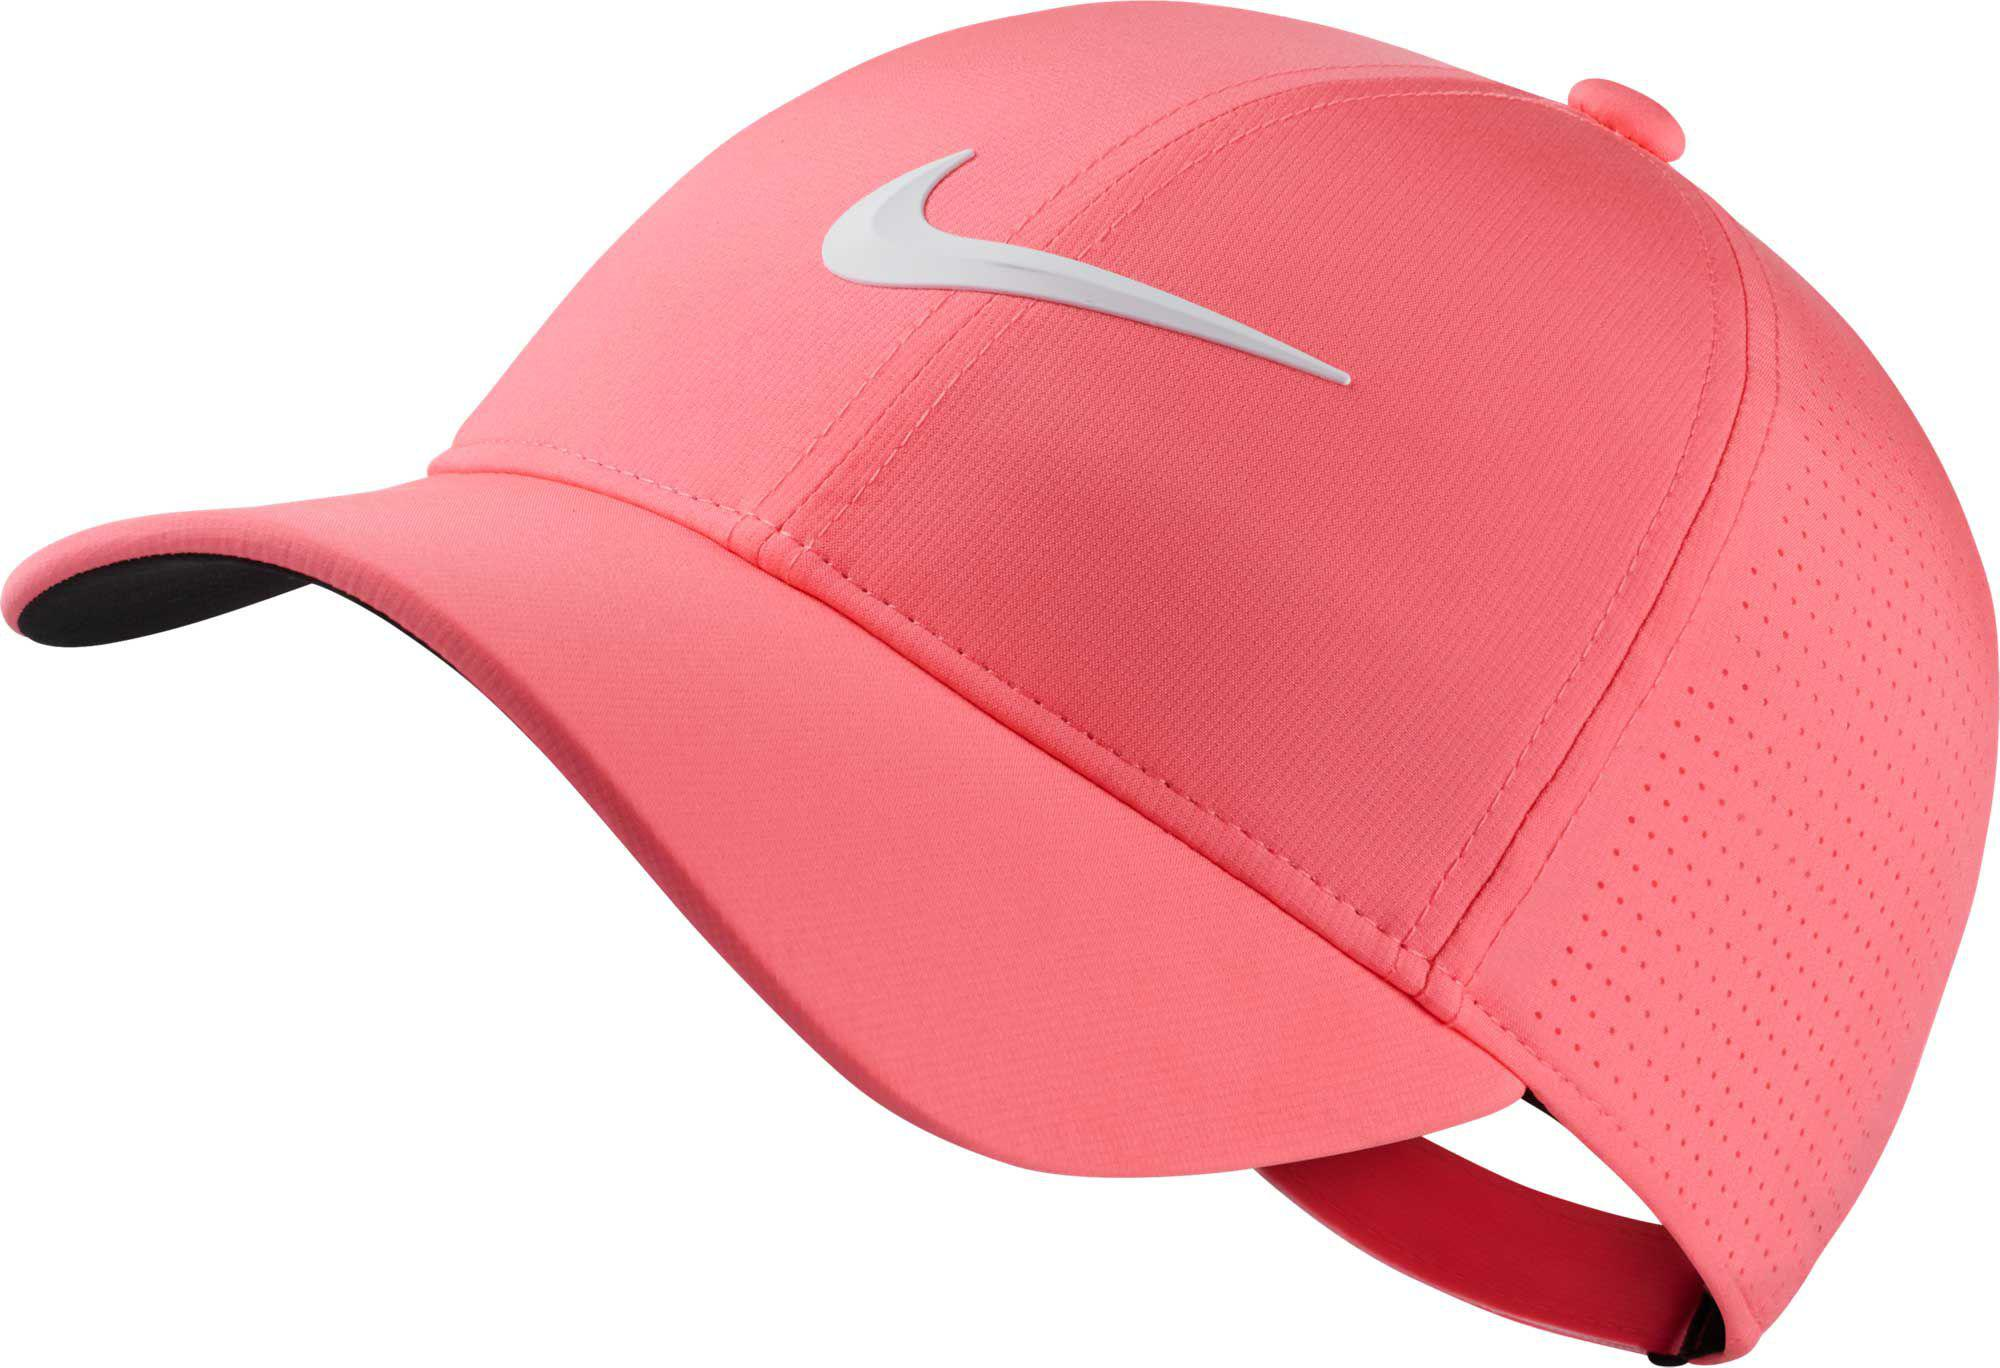 a4b4bbfd Nike 2018 Aerobill Legacy91 Perforated Golf Hat in Pink - Lyst